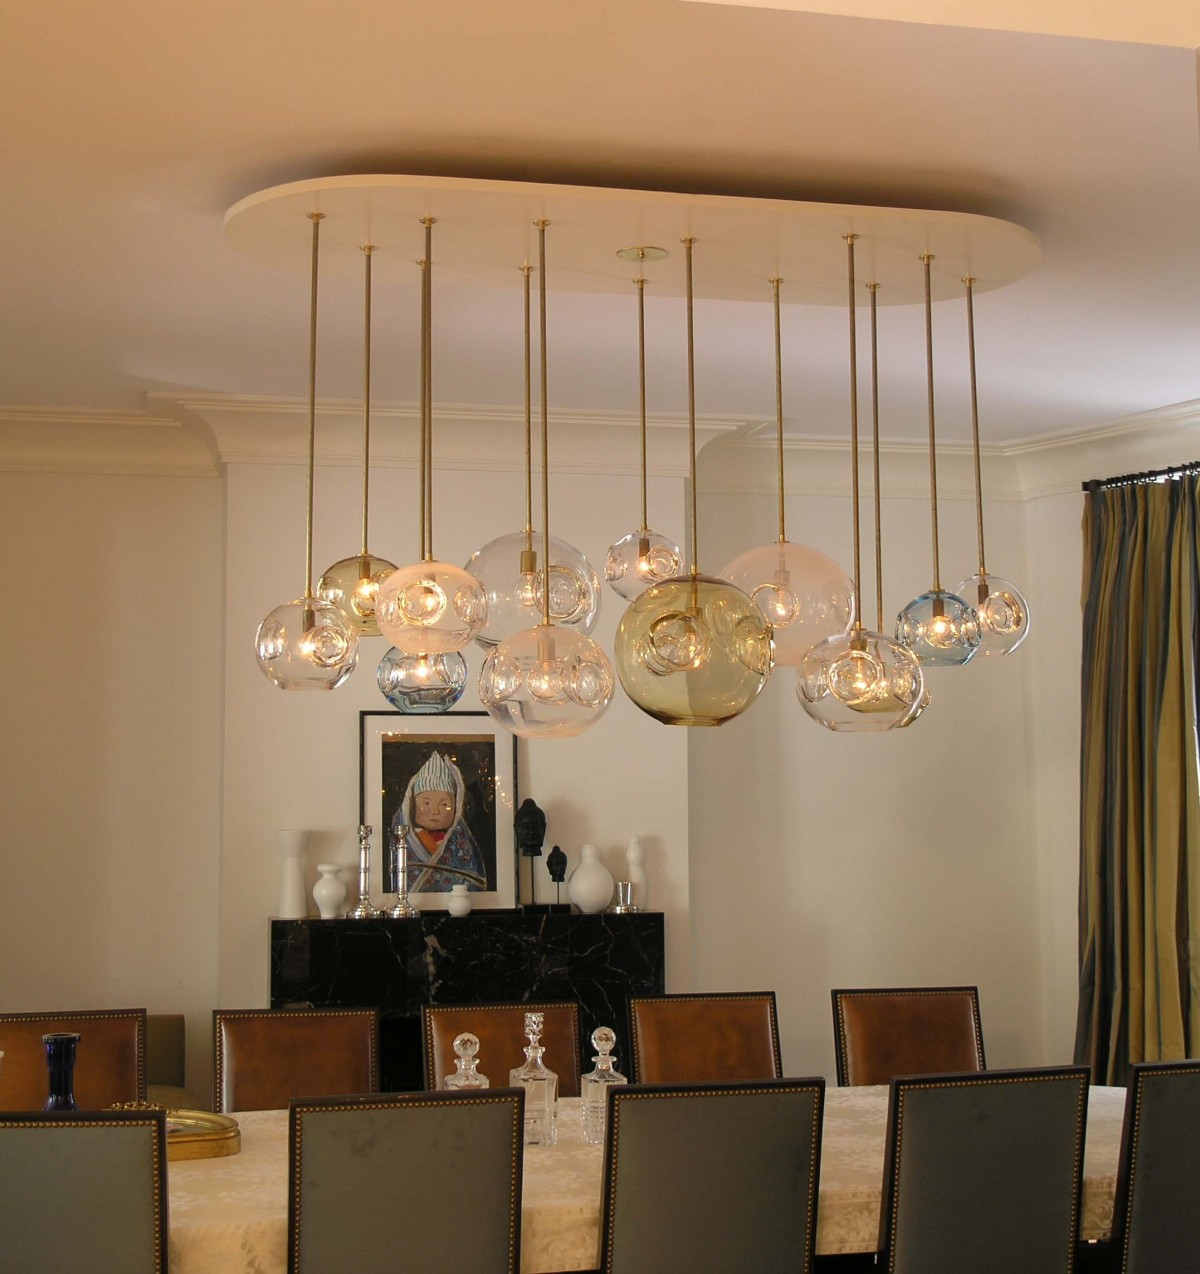 OLYMPUS DIGITAL CAMERA. Contemporary Bold Lighting In Dining Room.